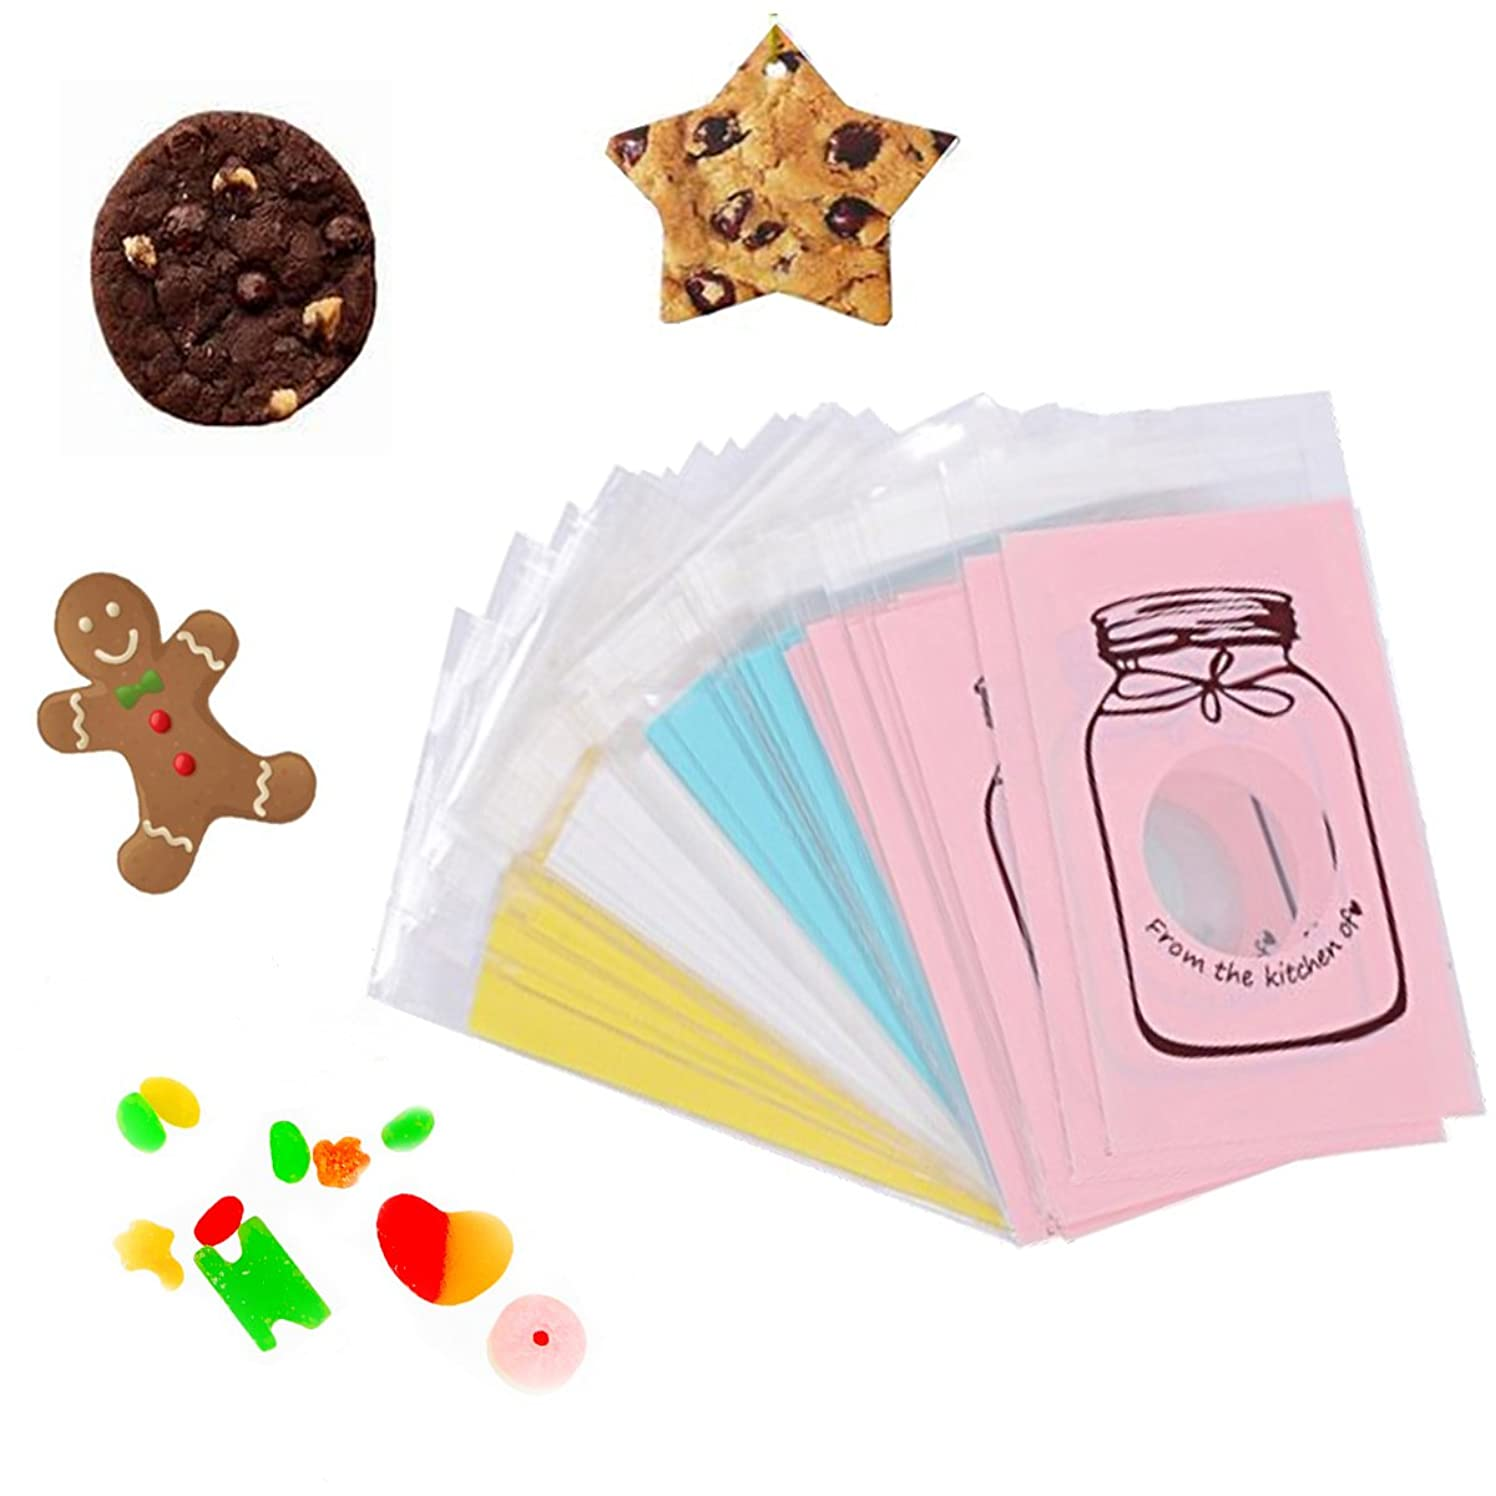 100PCS Clear Resealable Treat Bags – Cellophane Wrap Bags Self-Sealing, Nice for Bakery Candy Decorate,Food Safe (by Bela Beno) (White)